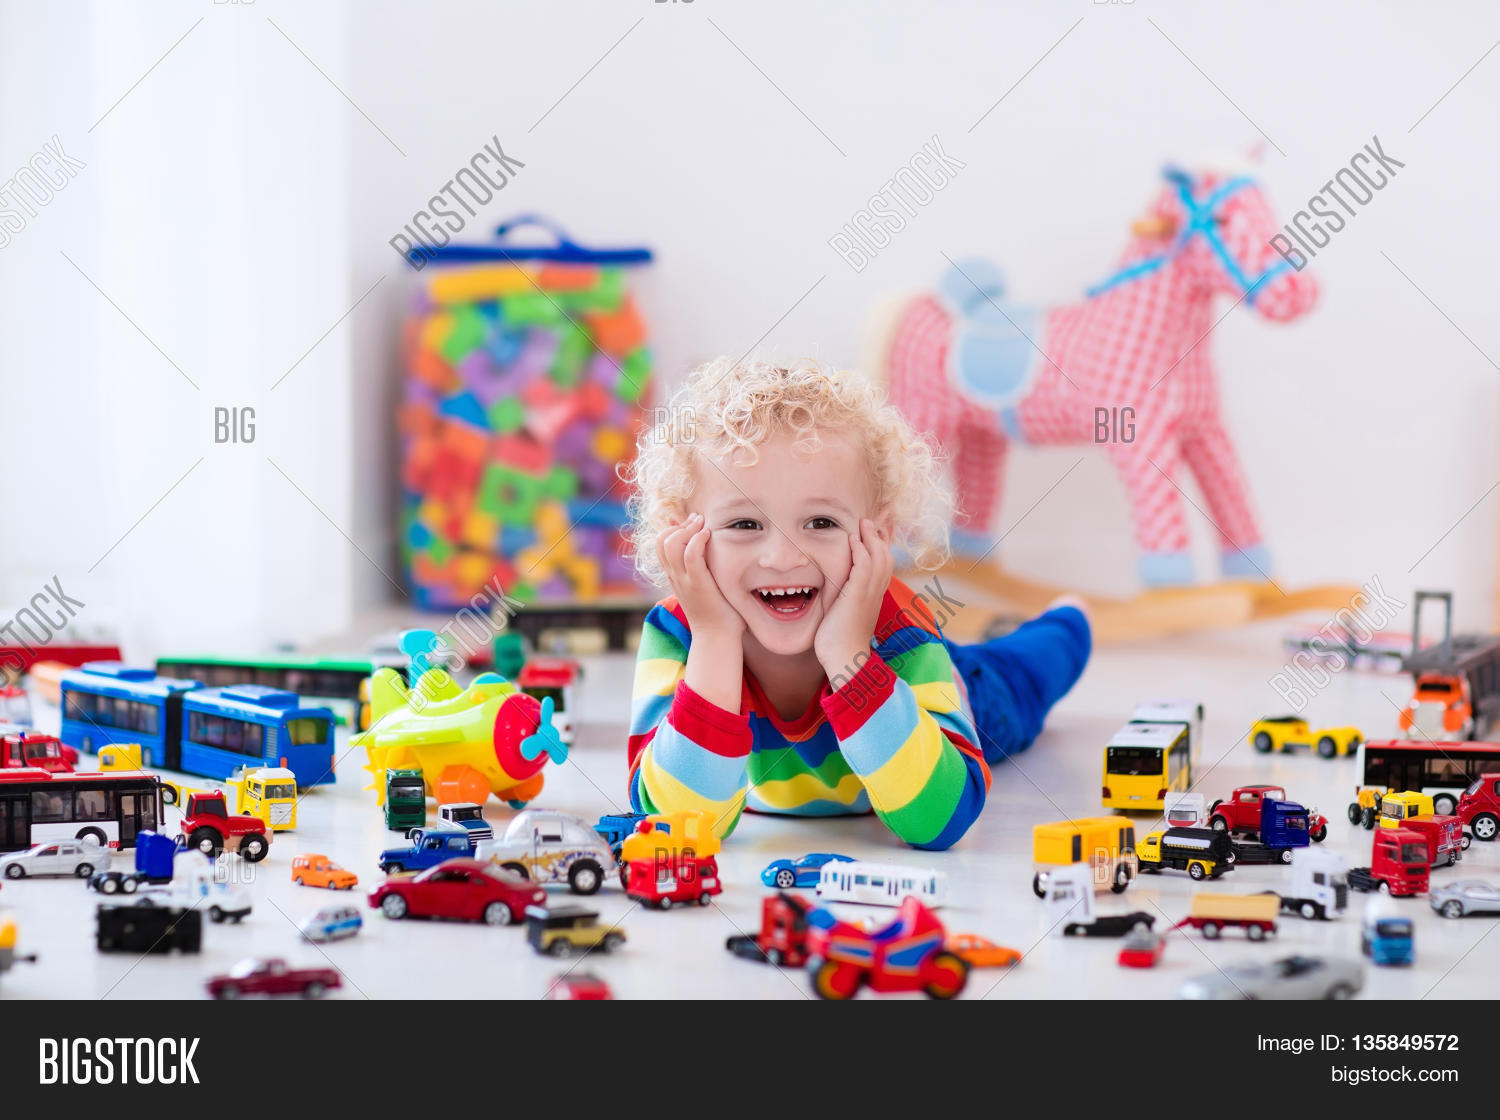 Big Boy Toys Games : Funny curly toddler boy playing his image photo bigstock